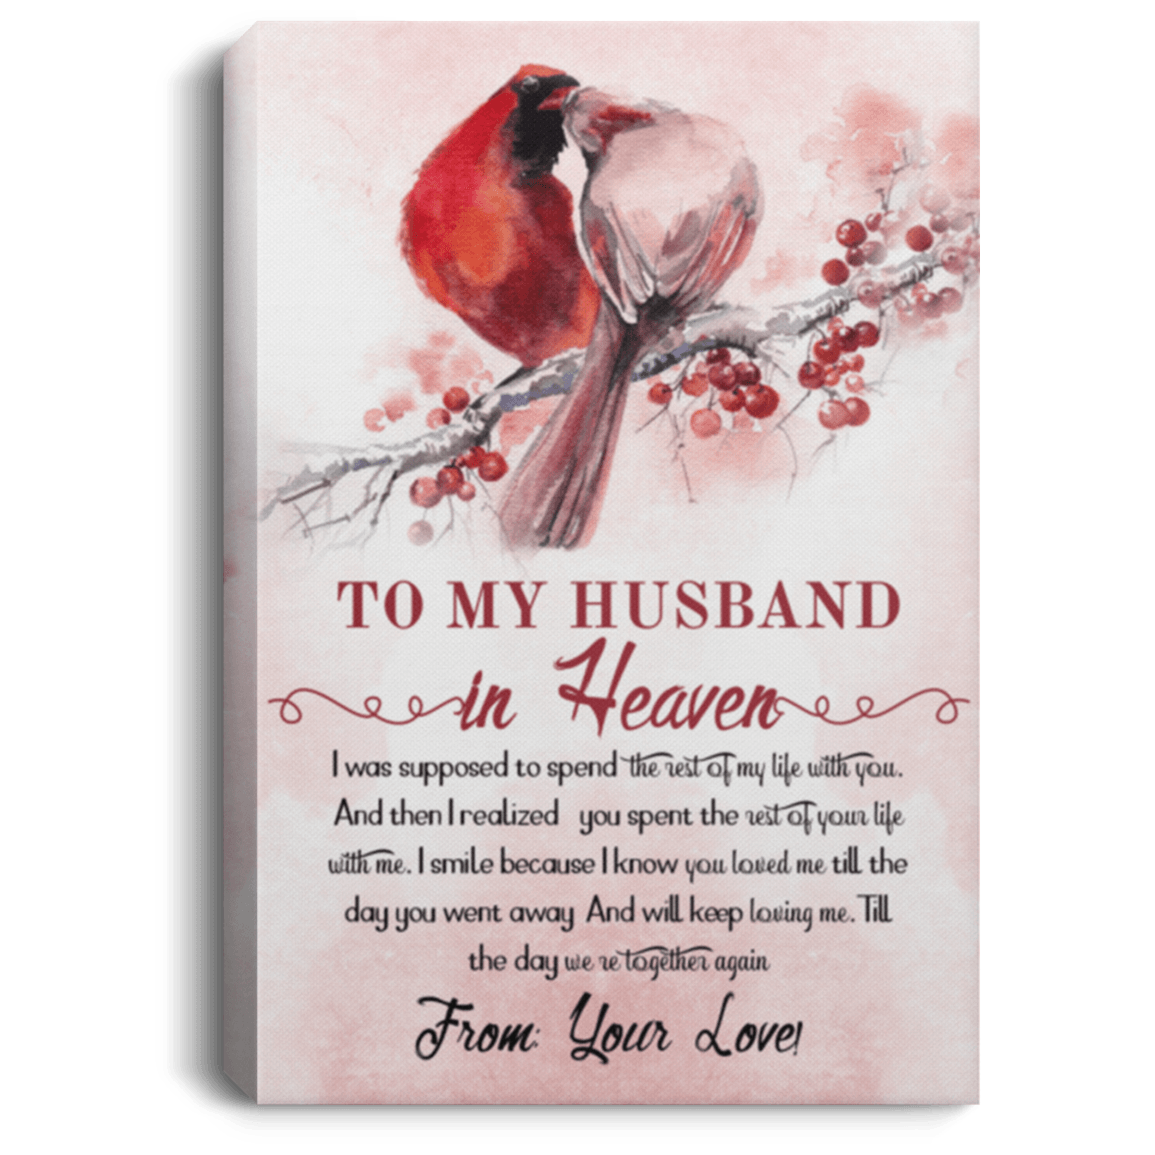 To My Love Valentine Gift Ideas Cardinal To My Husband In Heaven To Be With You Framed Canvas Unframed Poster Couple Cardinal Home Wall Art Cubebik